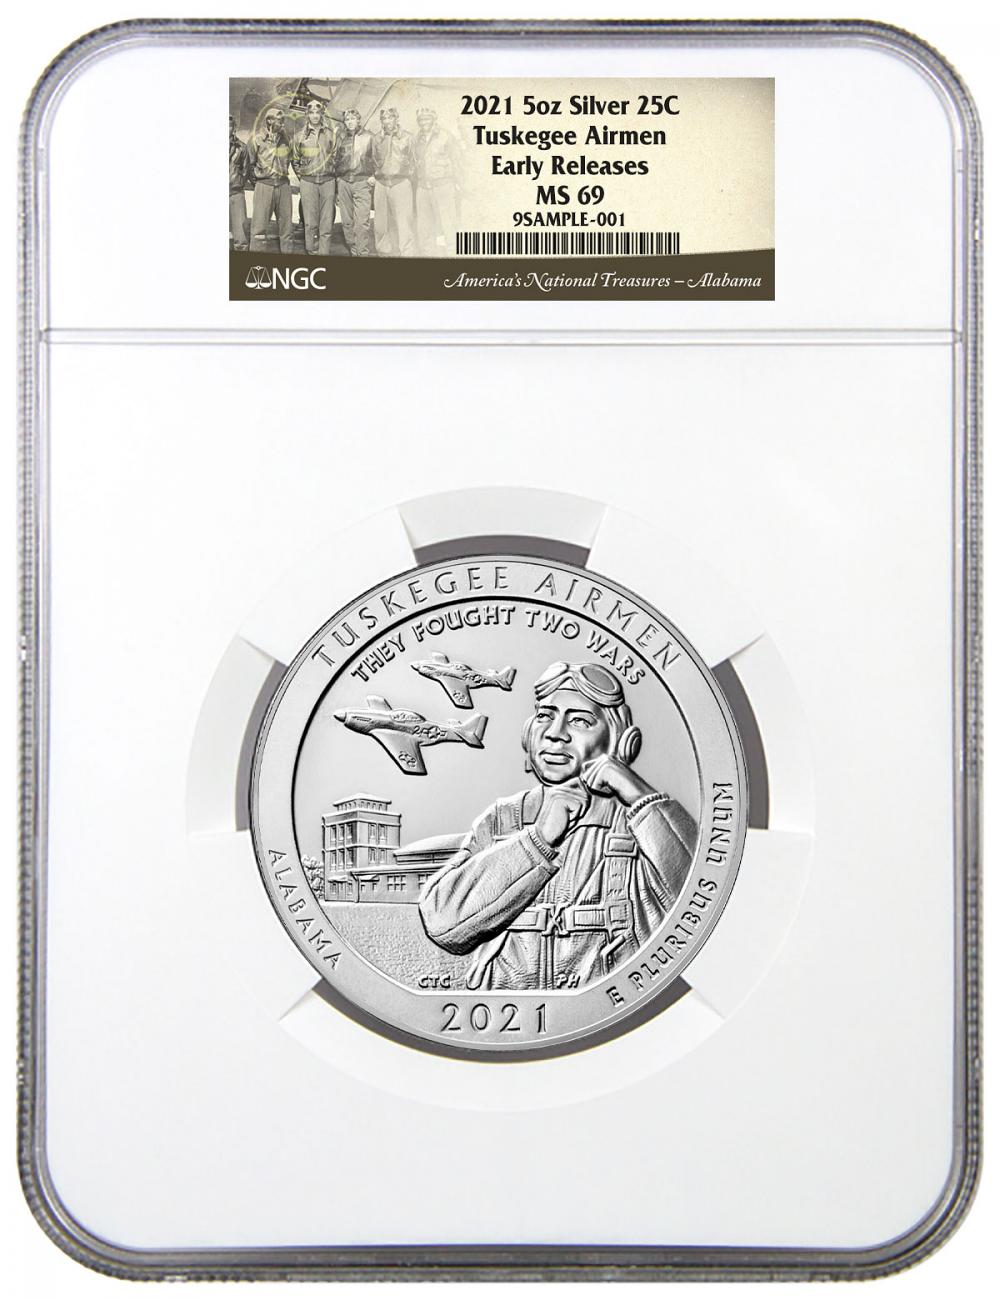 2021 Tuskegee Airmen National Historic Site 5 oz. Silver ATB America the Beautiful Coin NGC MS69 ER